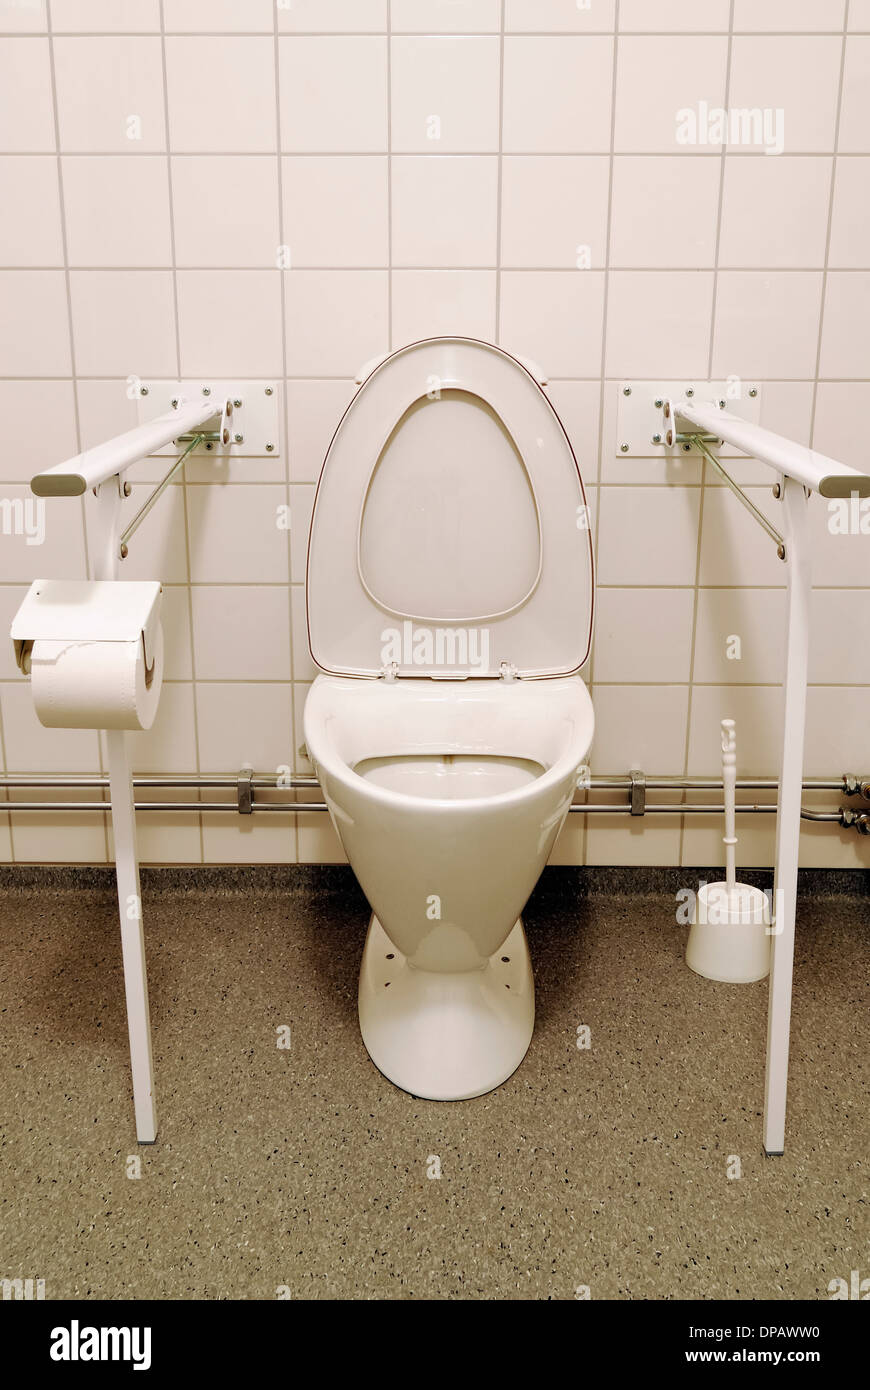 Disabled toilets - Stock Image